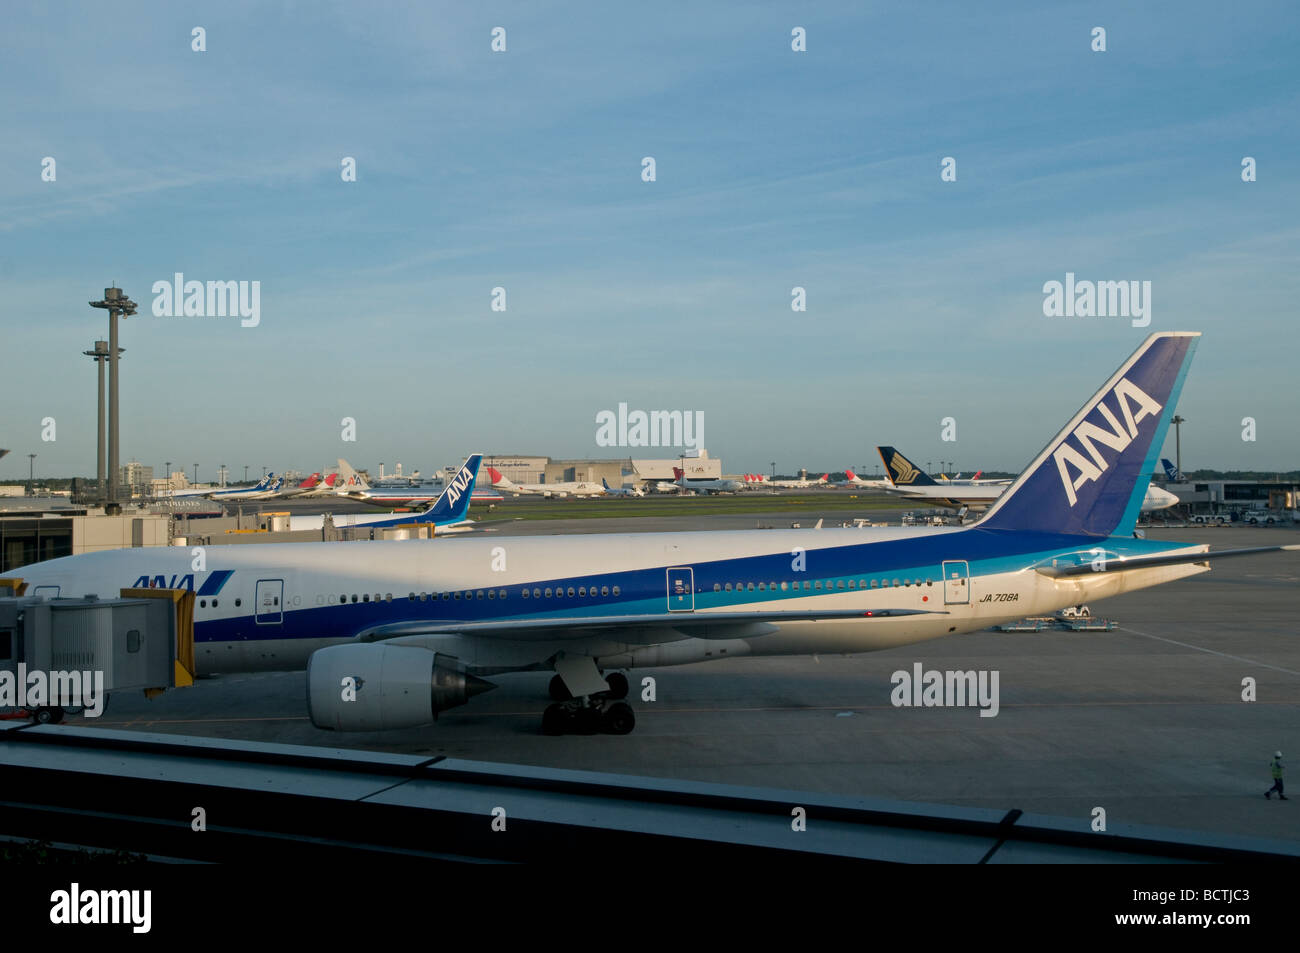 narita airplane stock photos u0026 narita airplane stock images alamy